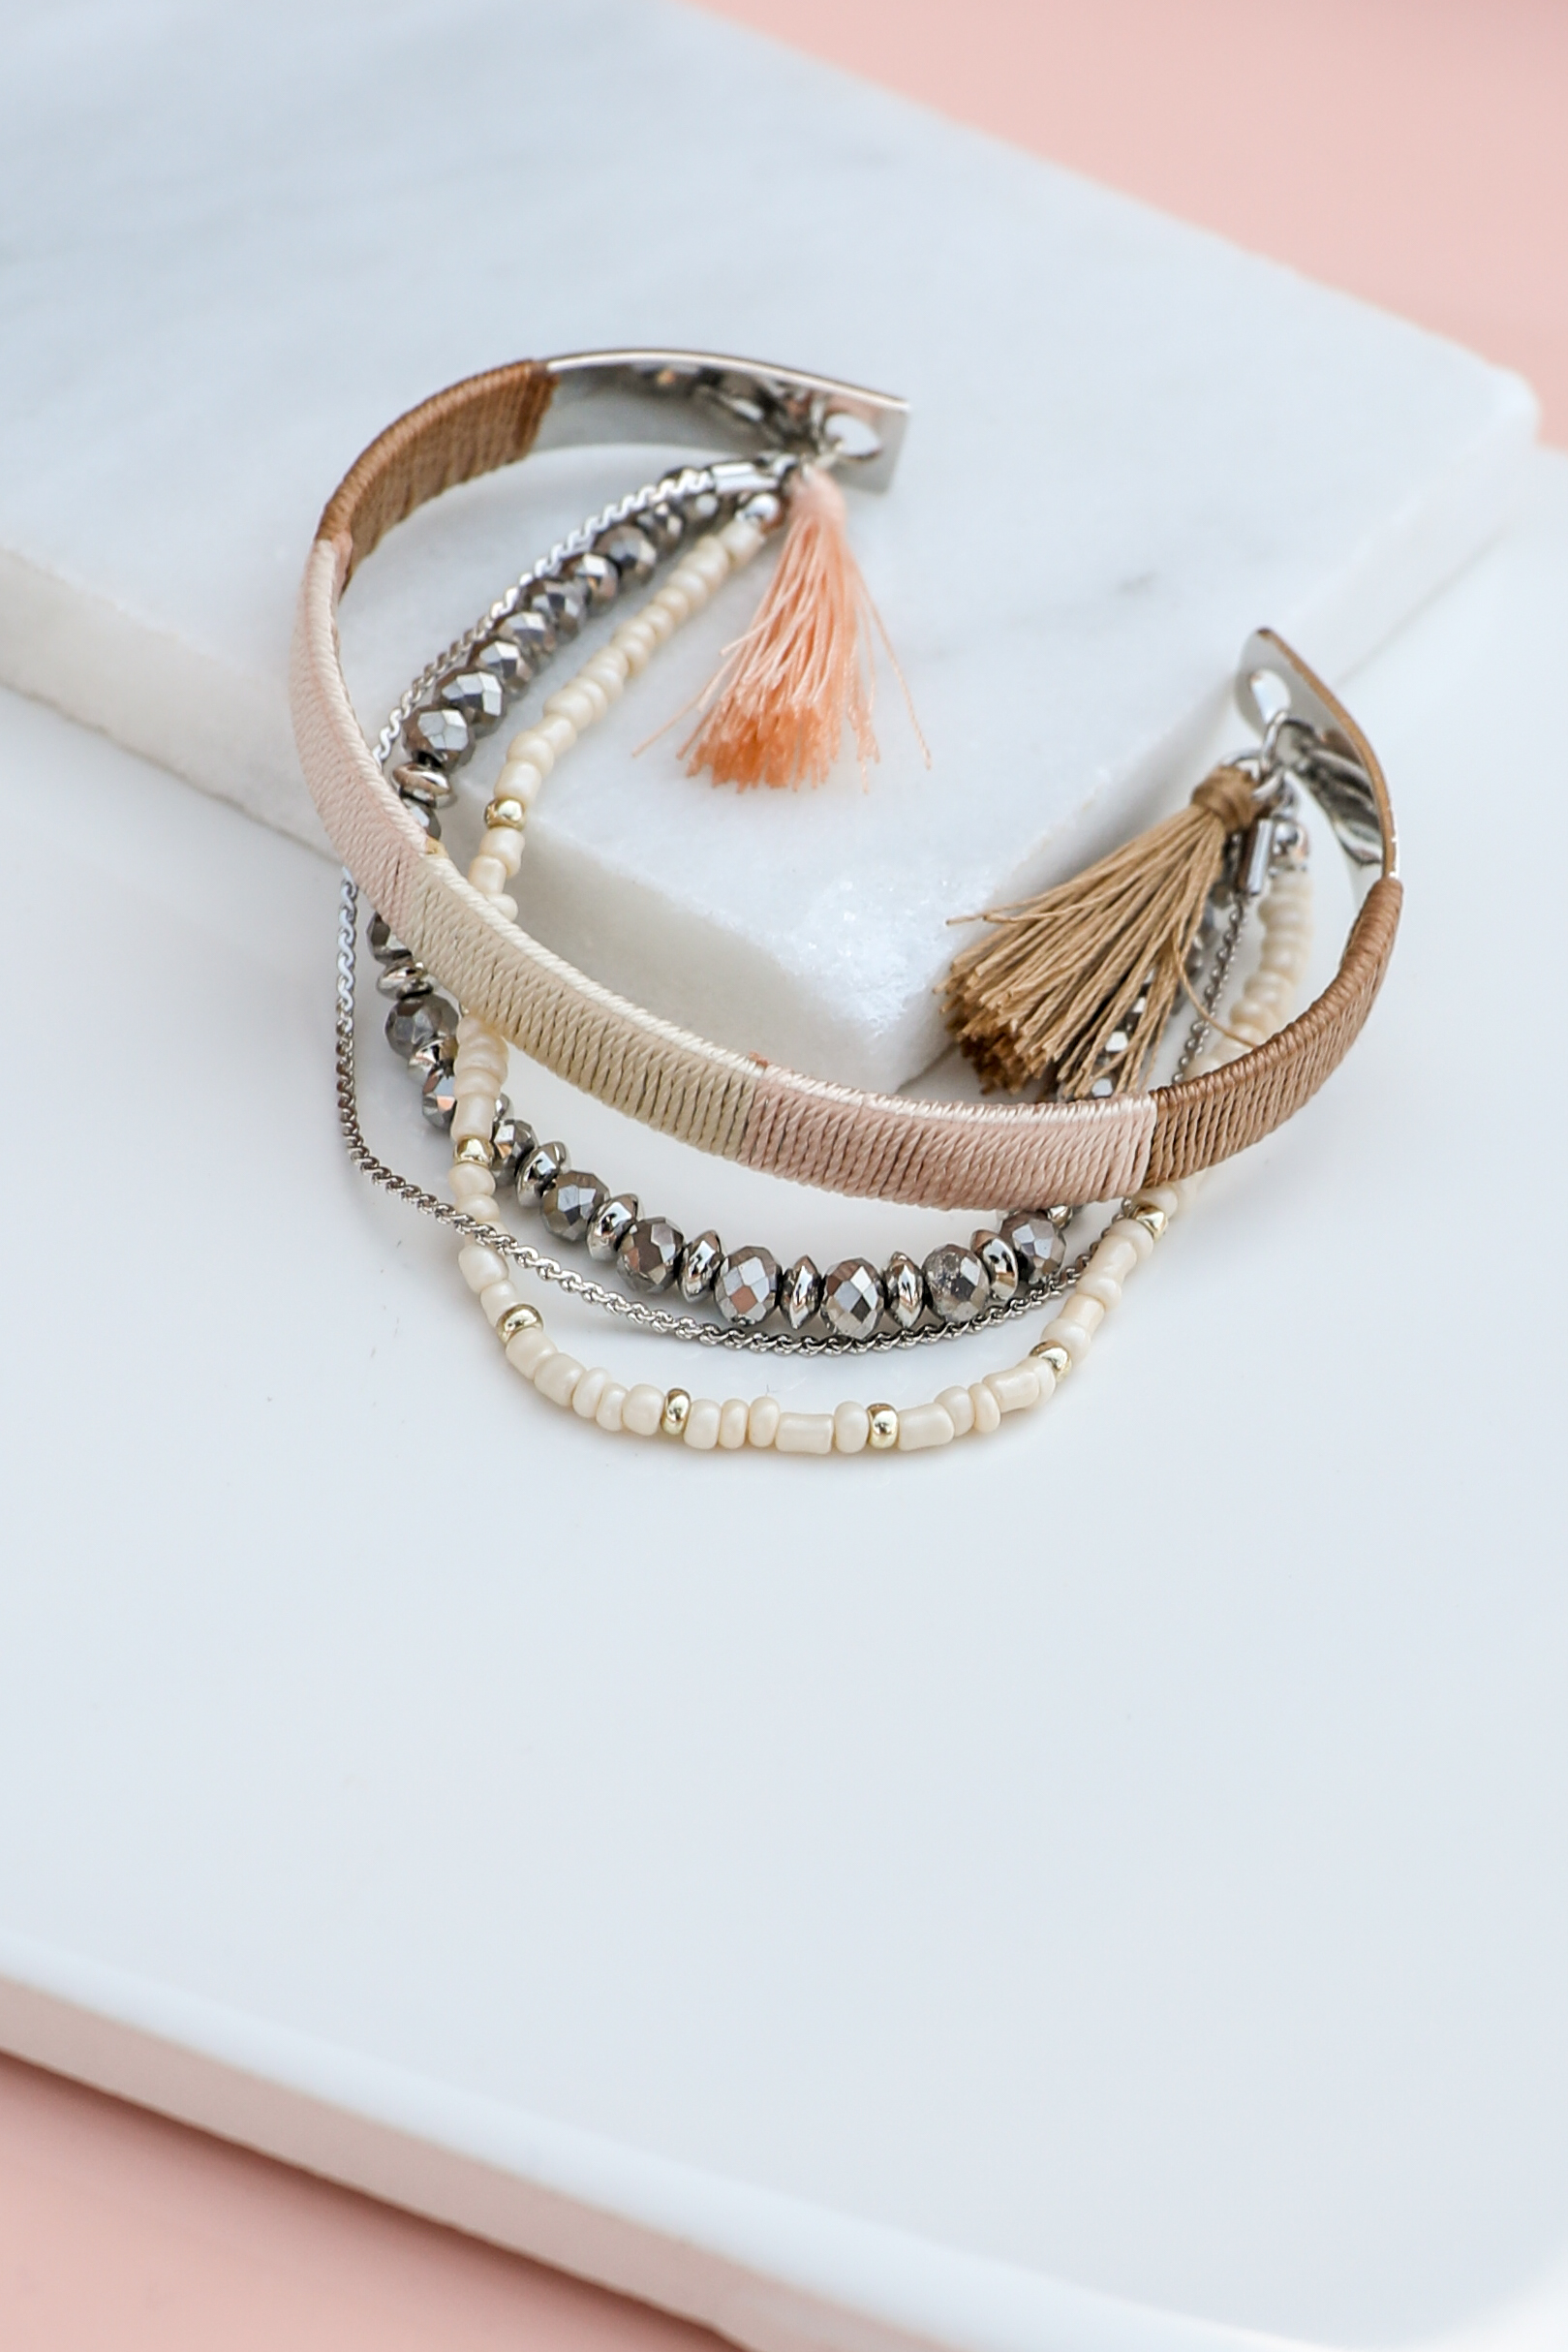 Blush Thread Wrapped Cuff Bracelet with Beaded Details